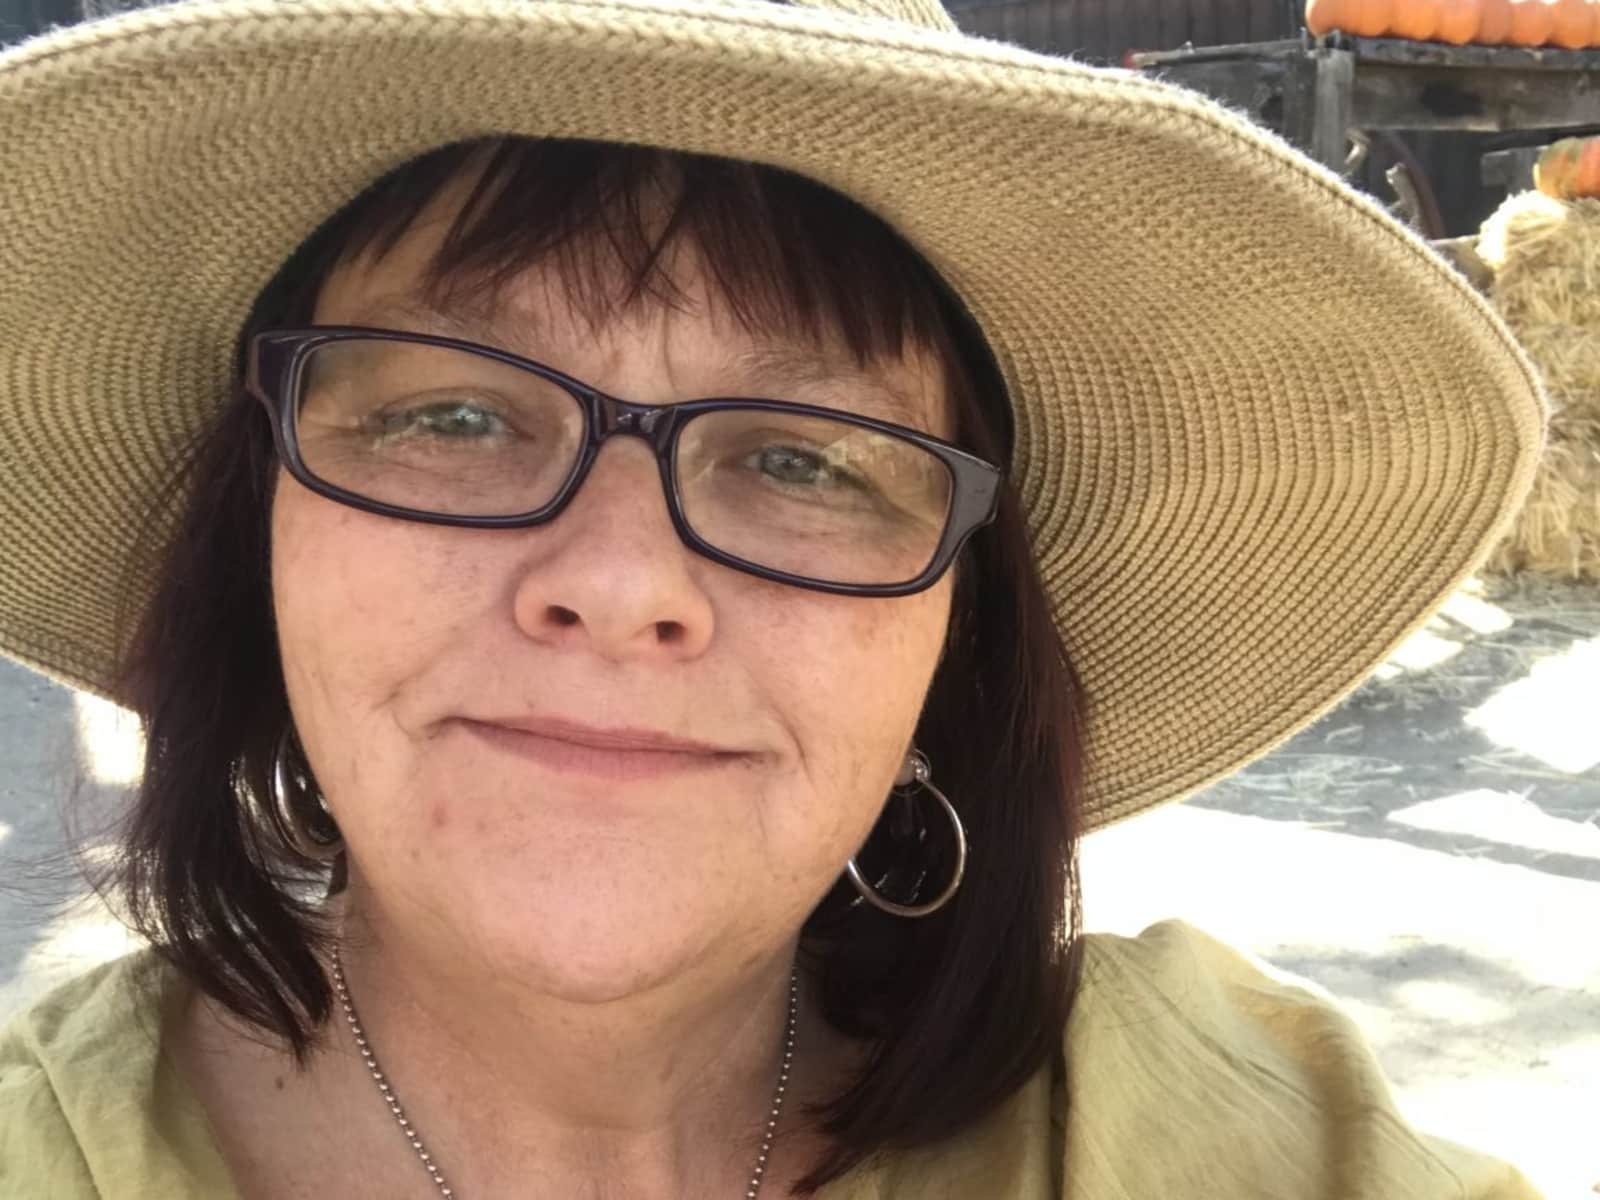 Susan from Sonora, California, United States